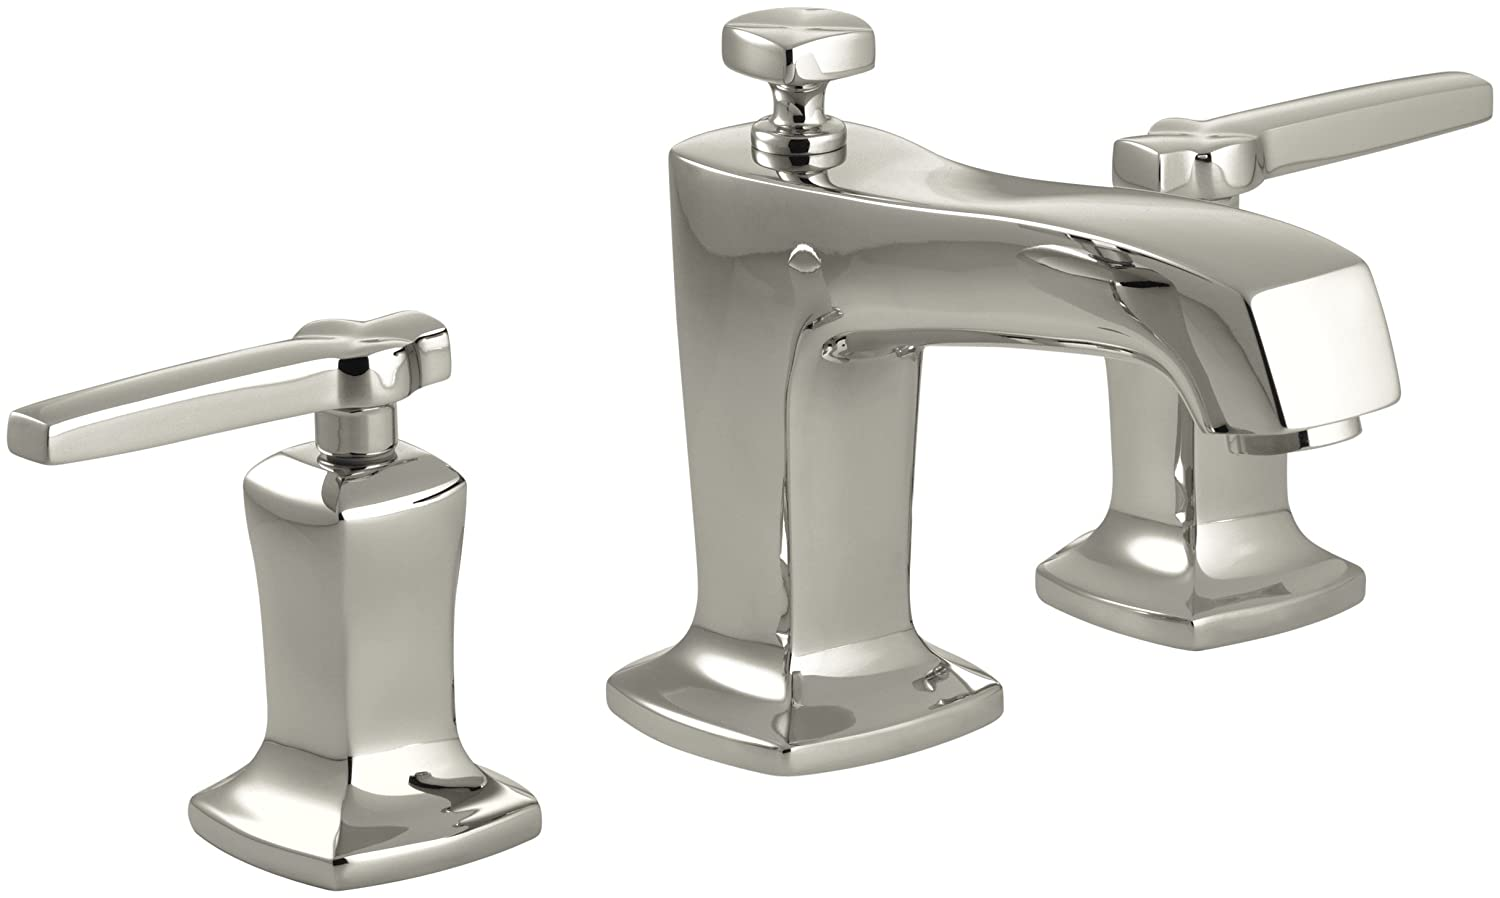 kohler k 16232 4 bn margaux widespread lavatory faucet vibrant kohler k 16232 4 bn margaux widespread lavatory faucet vibrant brushed nickel touch on bathroom sink faucets amazon com